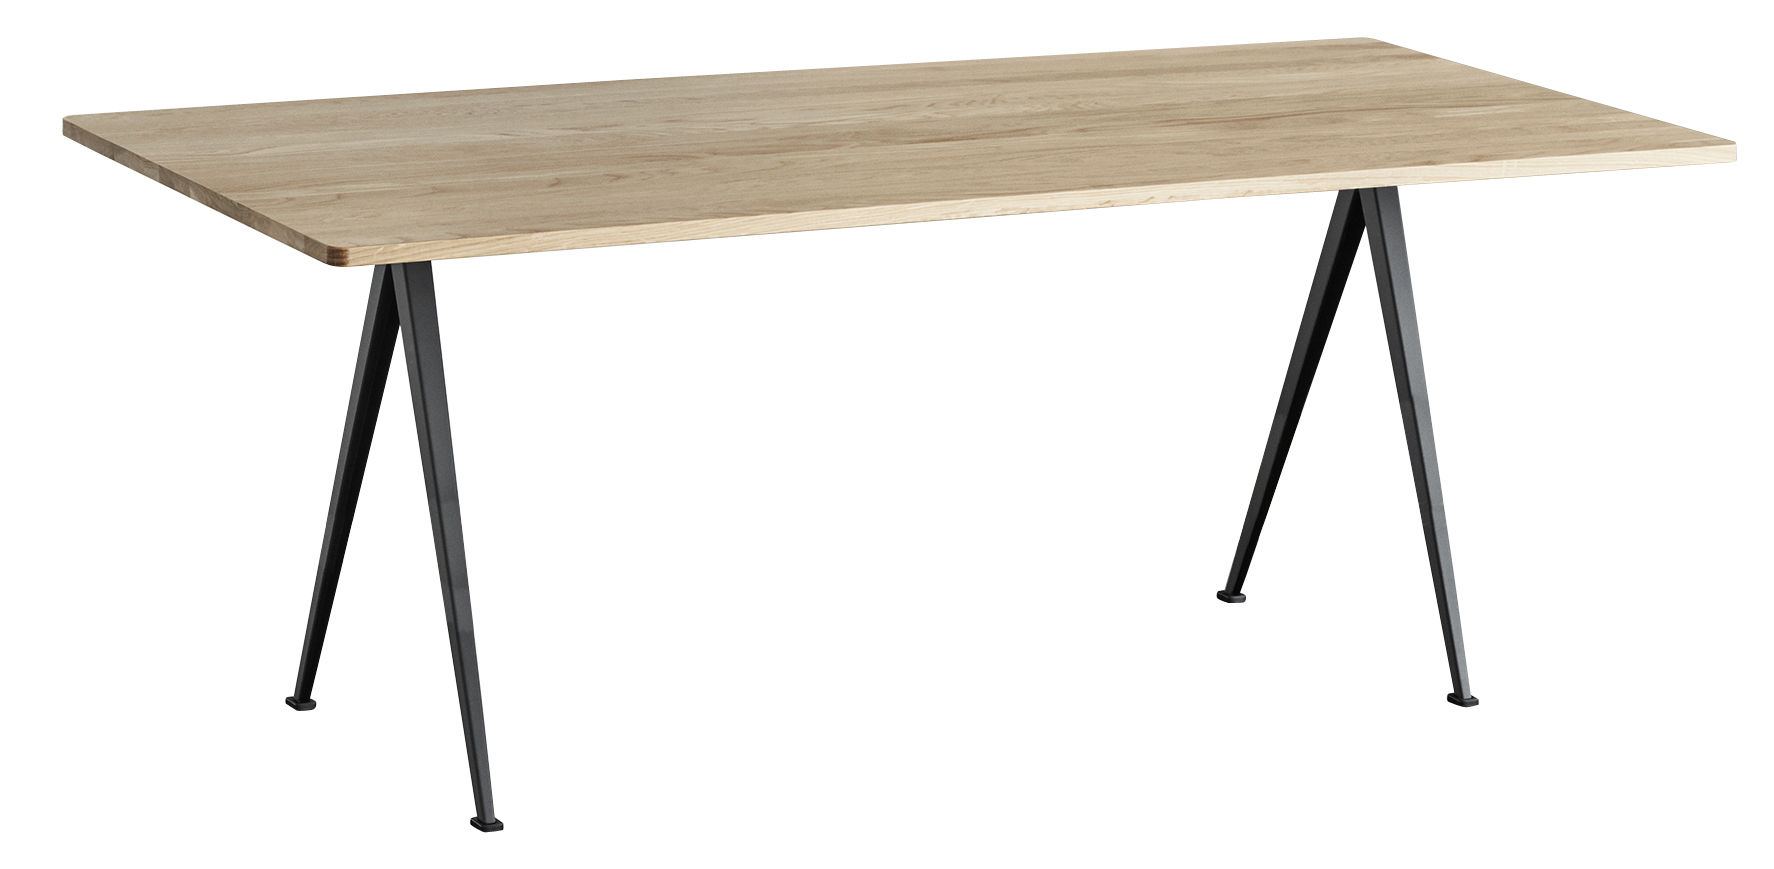 pyramid n 02 table 190 x 85 cm re issue 1959 190 x. Black Bedroom Furniture Sets. Home Design Ideas